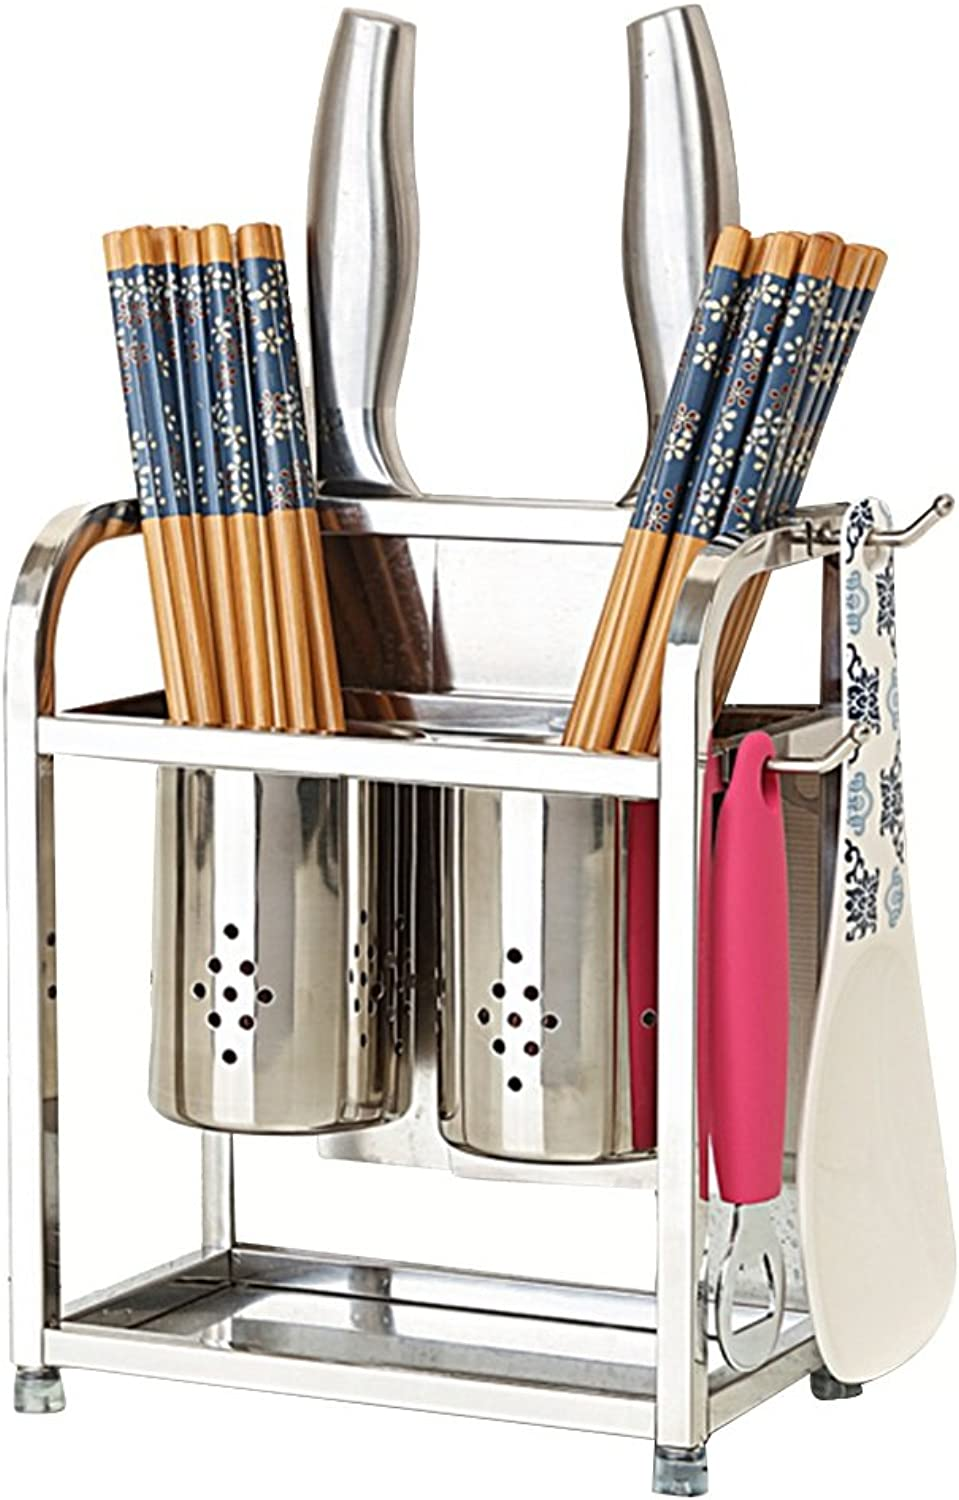 LS Shelf 304 Stainless Steel Hanging Double Chopsticks Knife Rack Kitchen Multifunction Hollow Drain Rack Size 17  10  23cm 19  12  23cm Modern Retro Style Fashion Trend Rack (color   B)